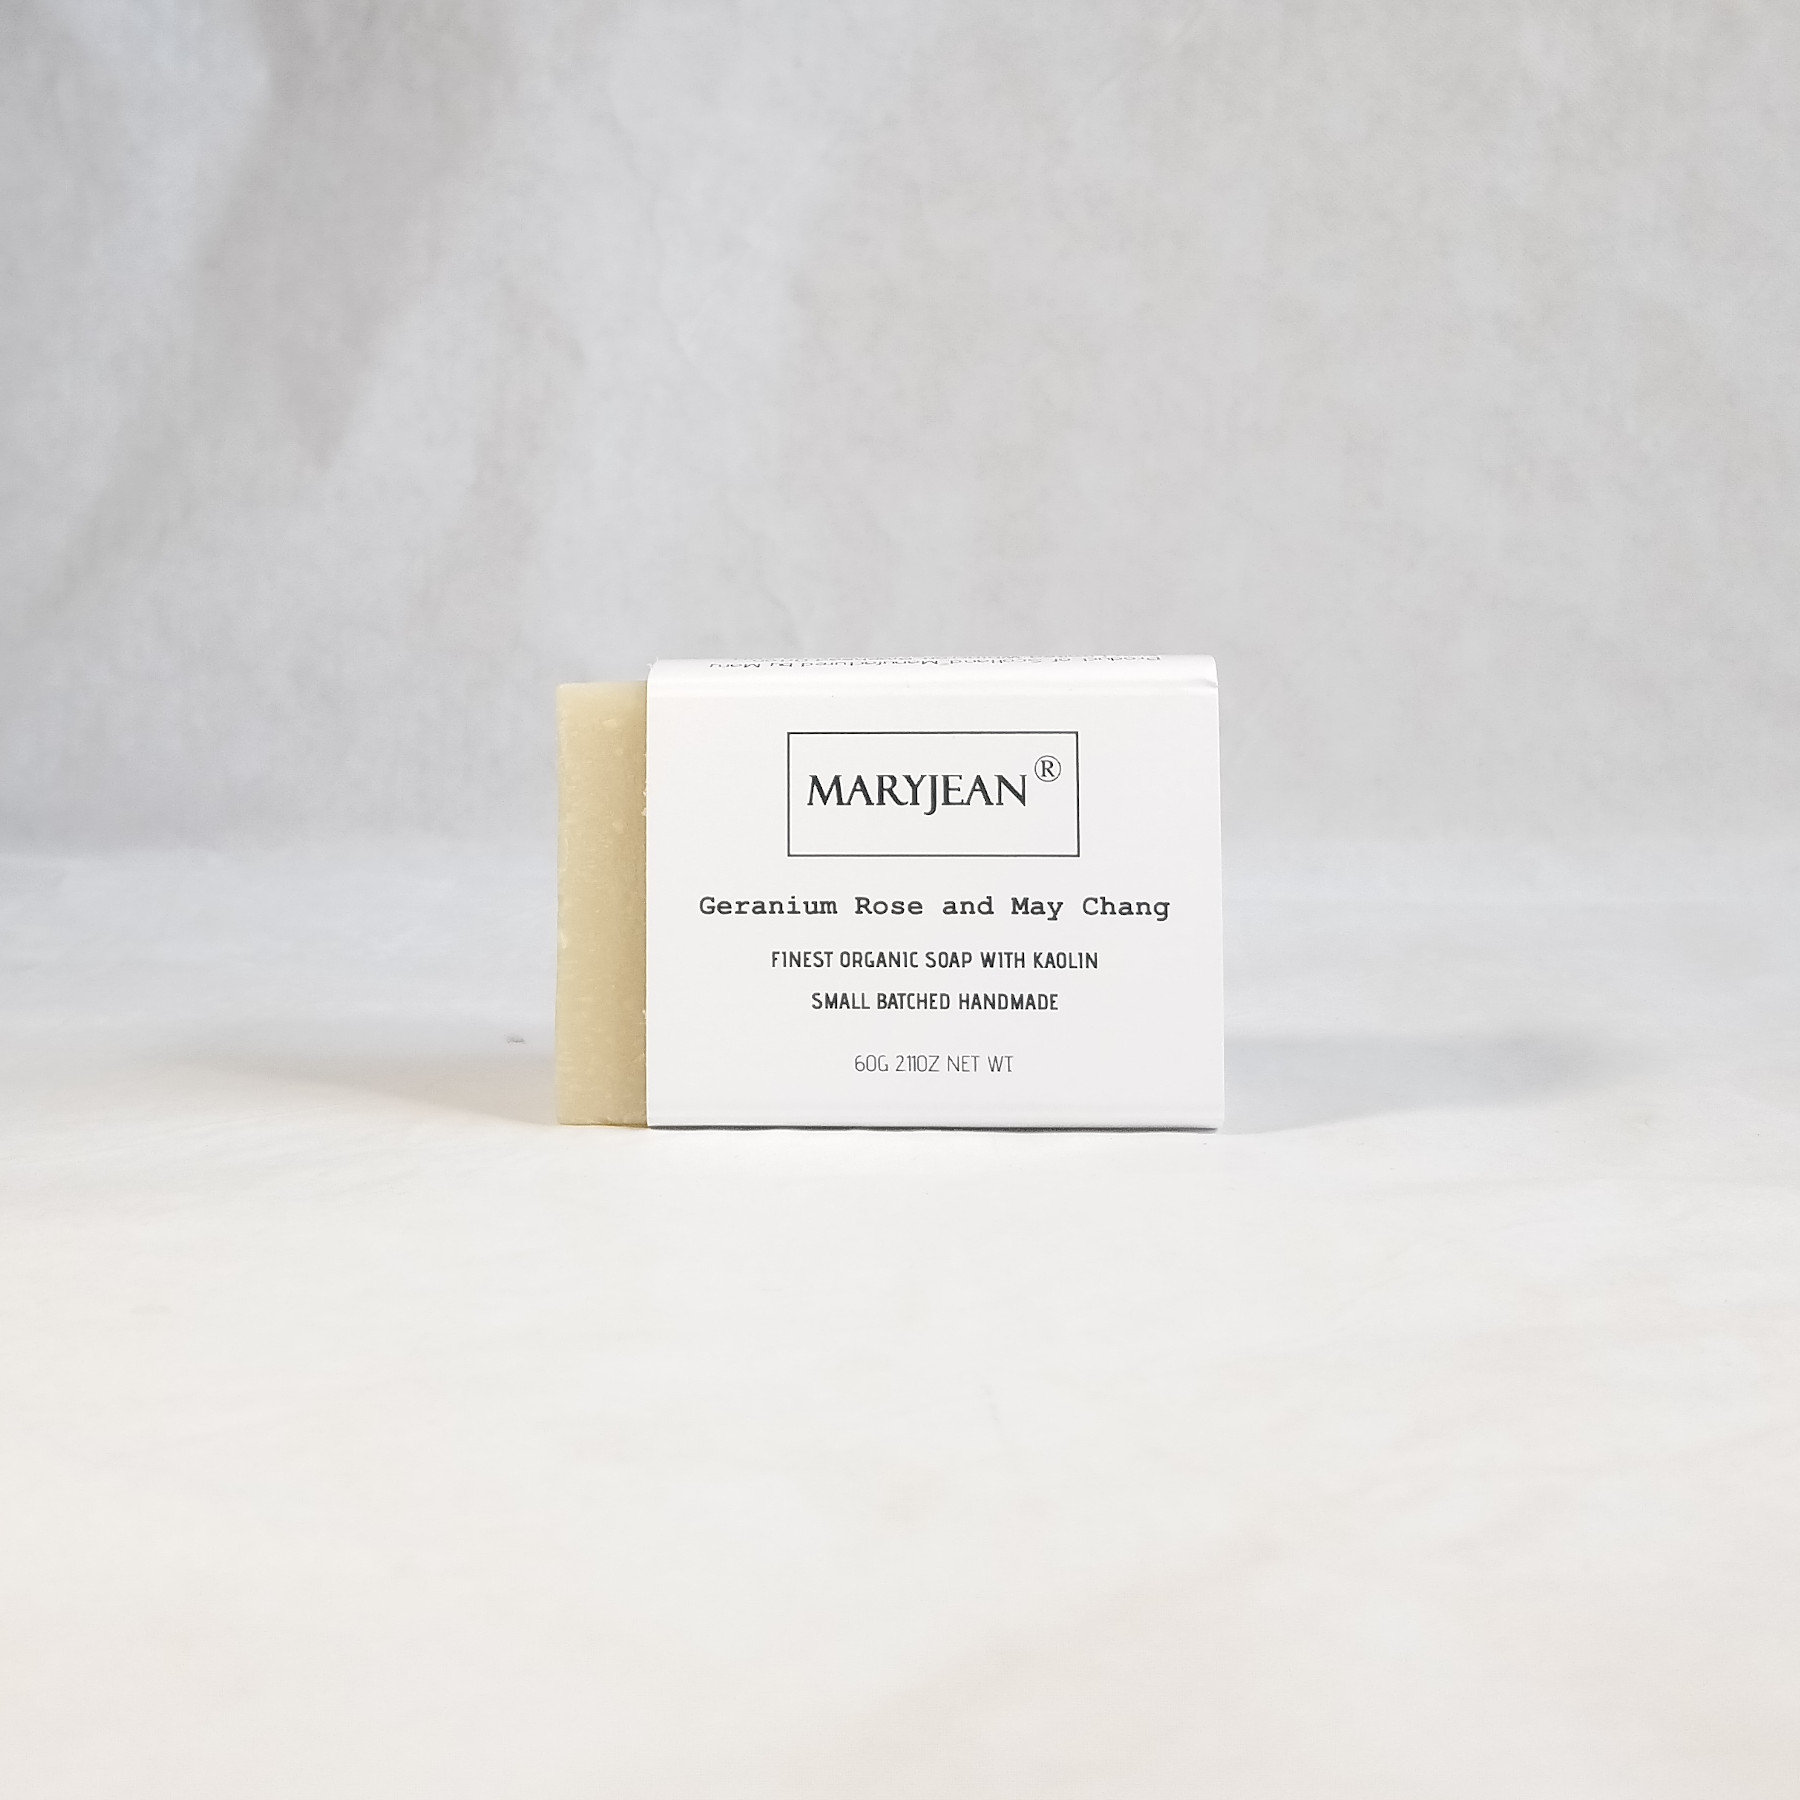 Enhance your skin health with this wet shaving Scottish natural shaving soap bar for sensitive and all skin types with moisturising aromatherapy Olive oil and Kaolin clay Travel Size Organic Scottish Geranium May Chang Gentlemen's Shaving Soap Handmade With Kaolin